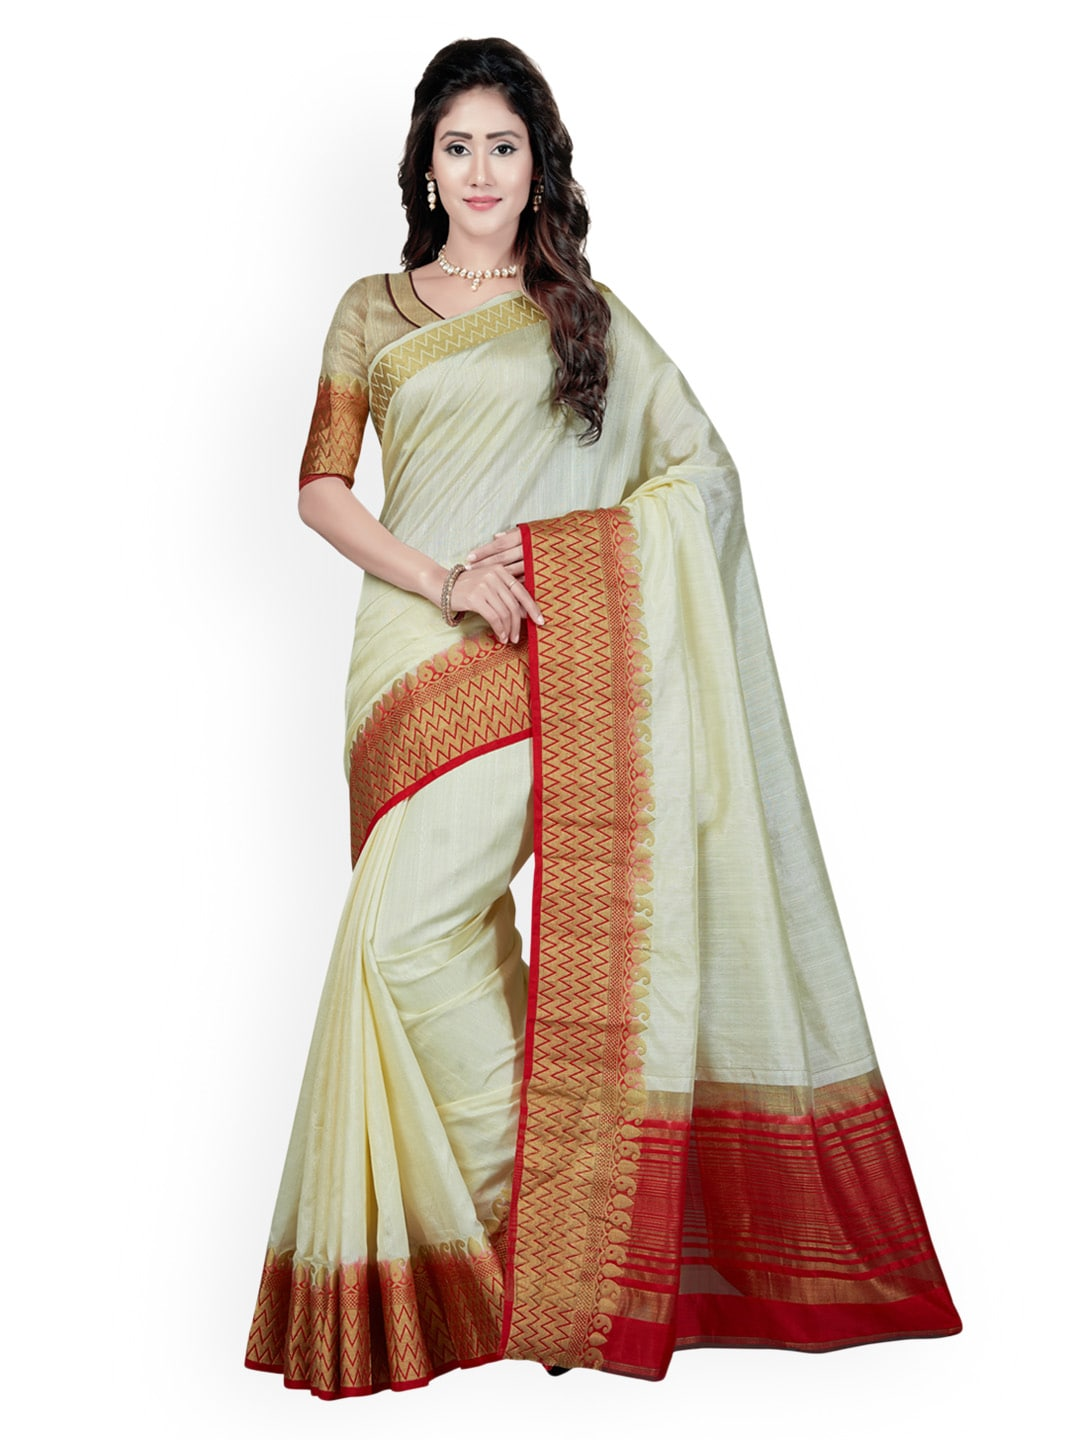 cc9d8ebe79246 Women Saree - Buy Women Saree online in India